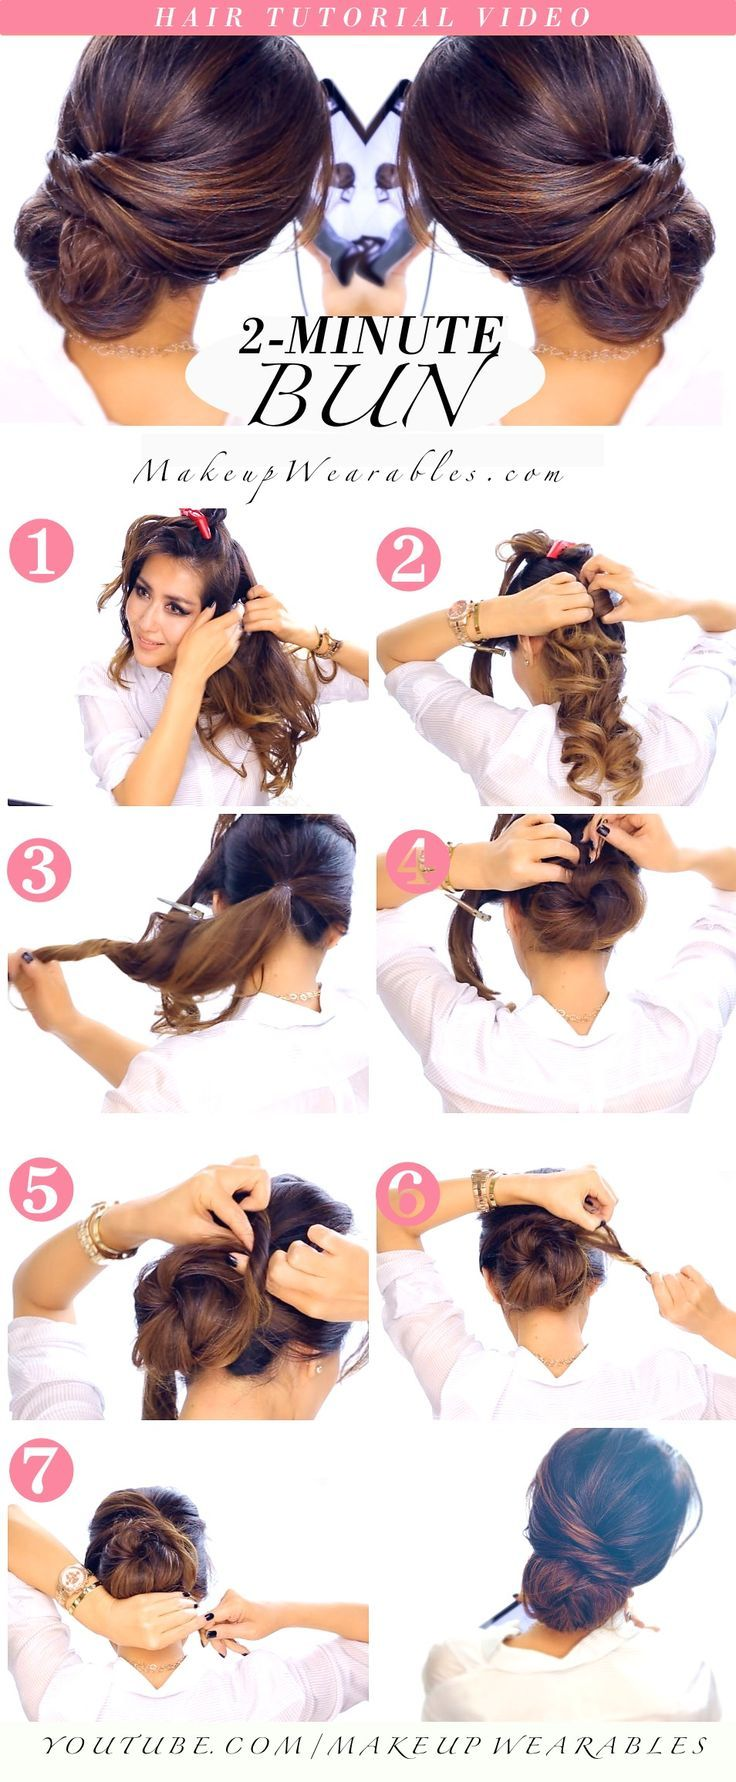 Nice easytomake valentineus day hairstyles you will fall in love